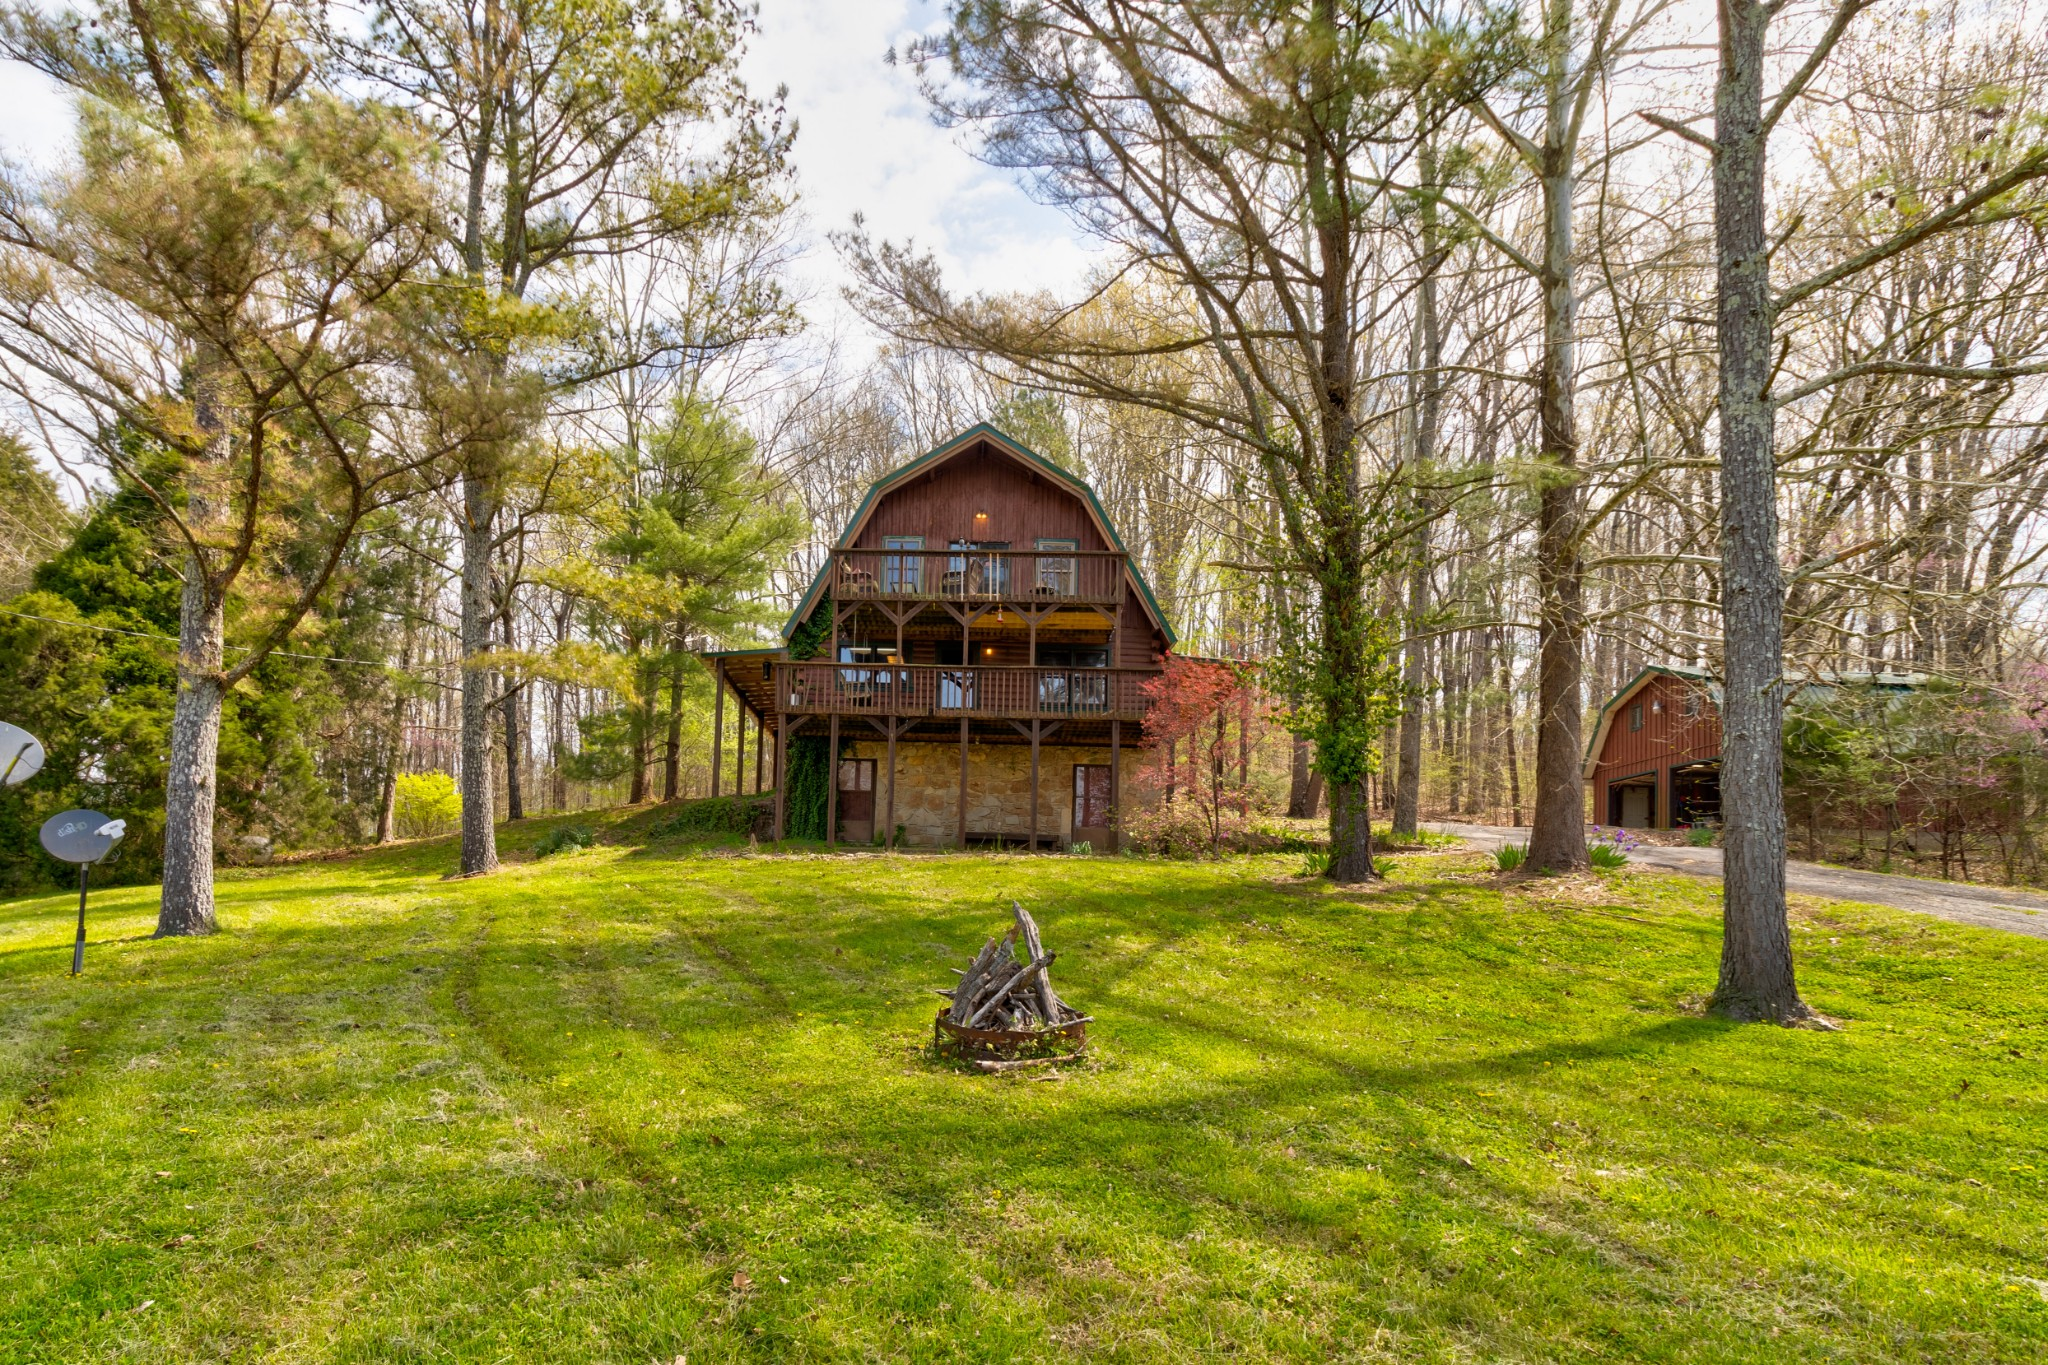 Get away from the hustle and bustle of downtown Nashville and check out this charming log home in Columbia, TN! This charming 3-story home boasts 3 bedrooms and 2.5 bathrooms. It also rests exclusively on 21.58 acres of land; perfect for camping and enjoying the outdoors! You'll love the beautiful views of this secluded, country-living cabin!